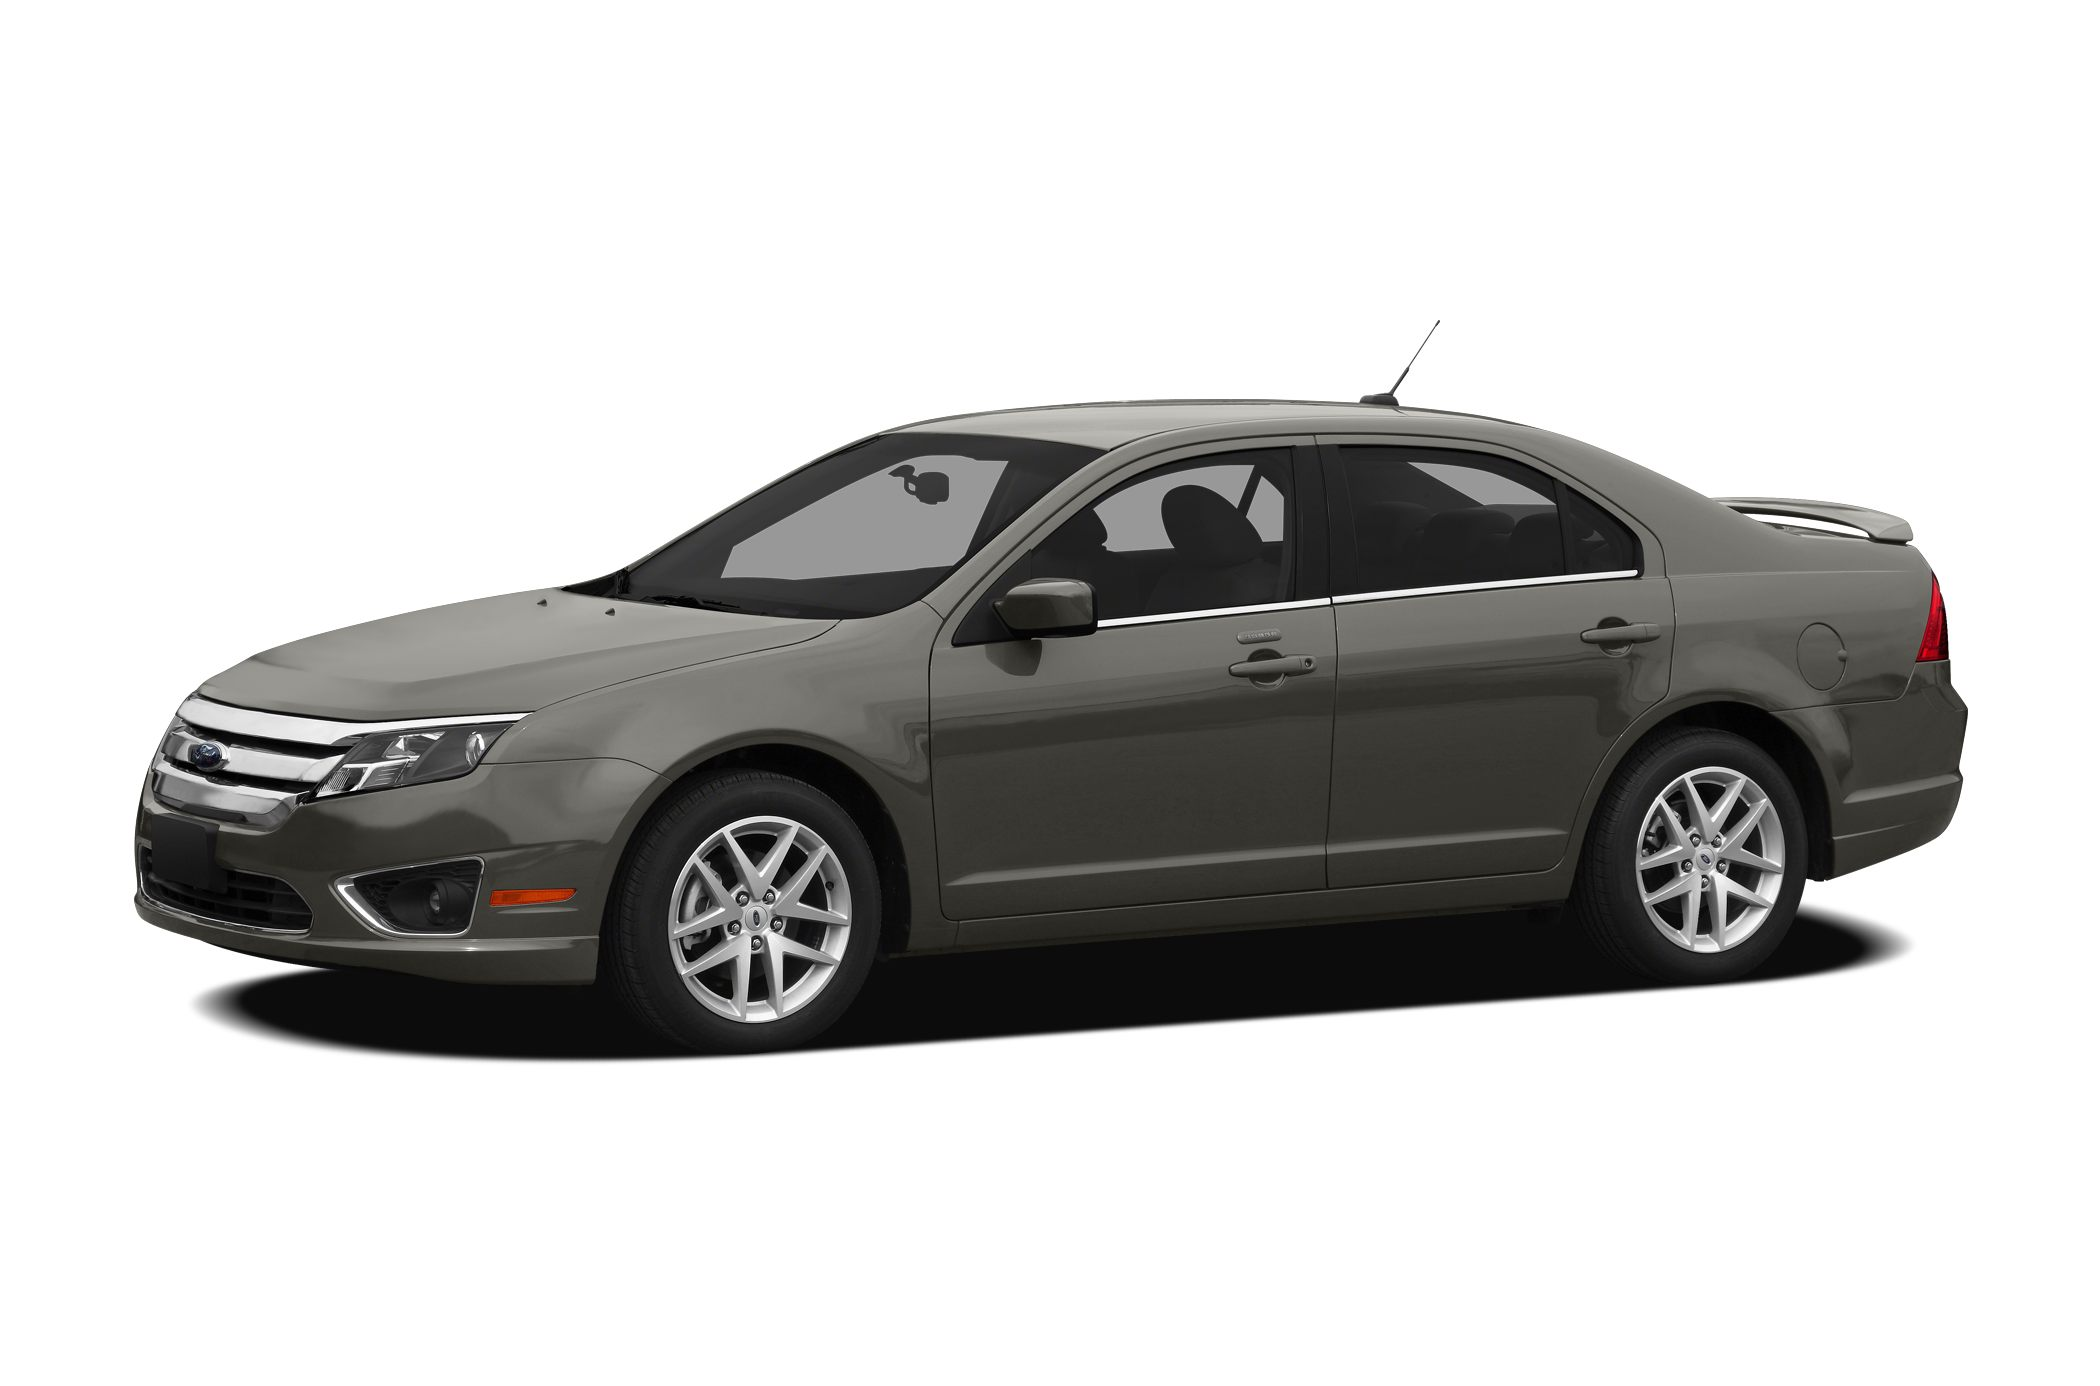 2012 Ford Fusion SEL Certfied by CARFAX - NO ACCIDENTS and ONE OWNER MP3 COMPATIBLE BL